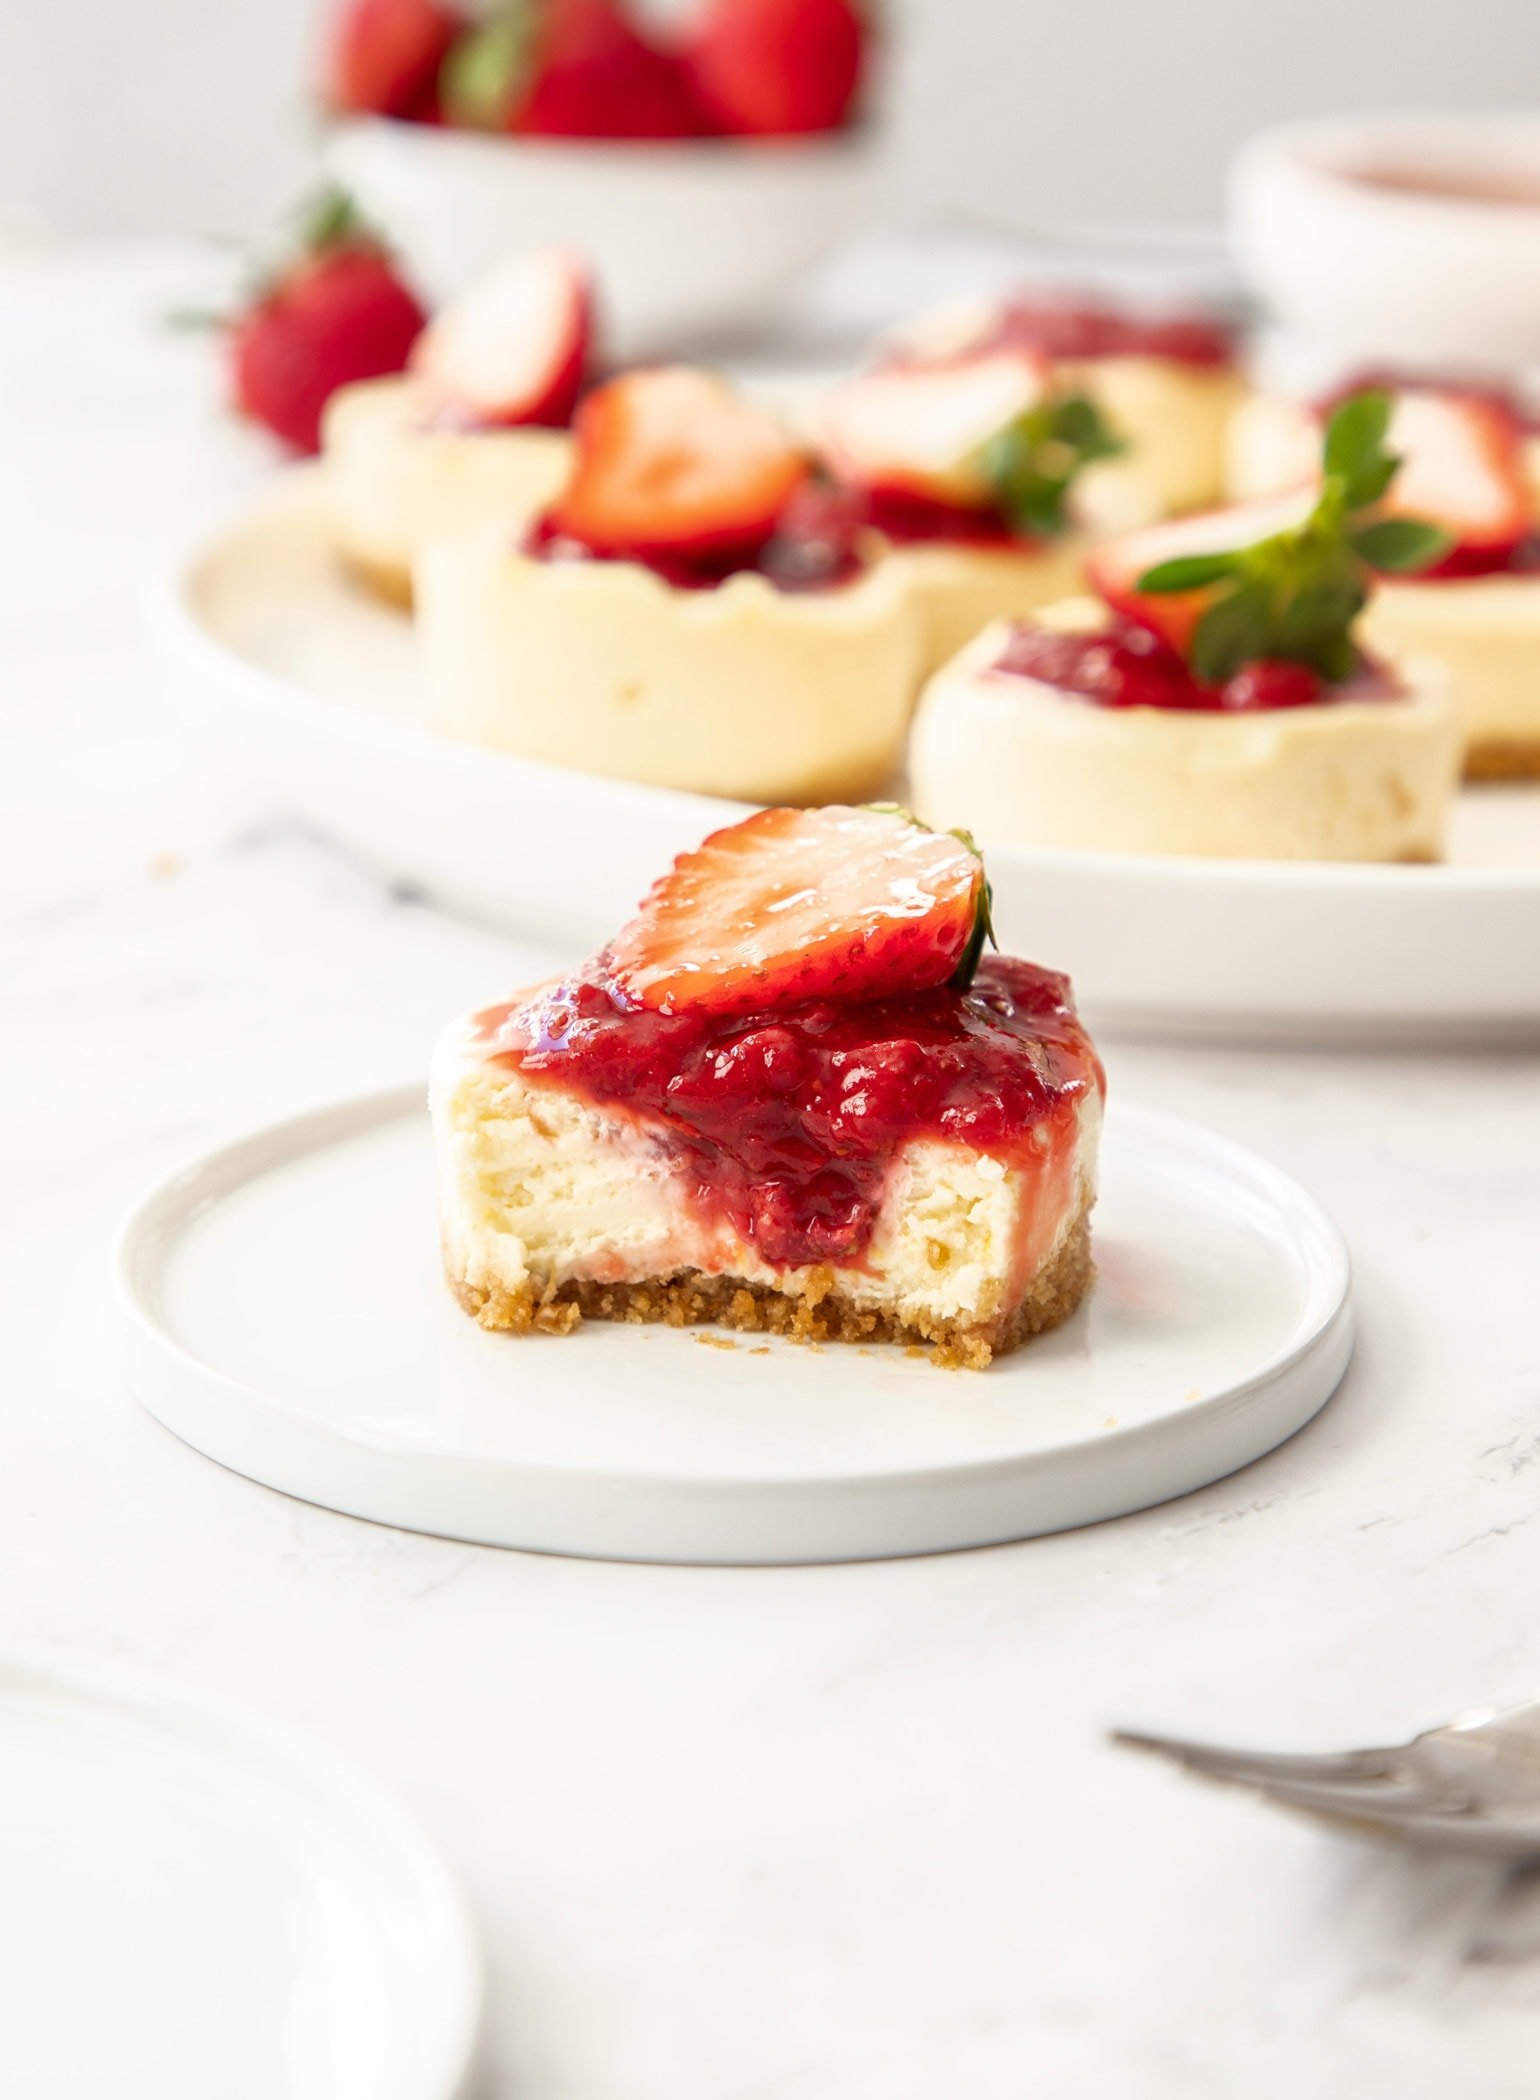 A mini cheesecake on a small white plate, with more in the background